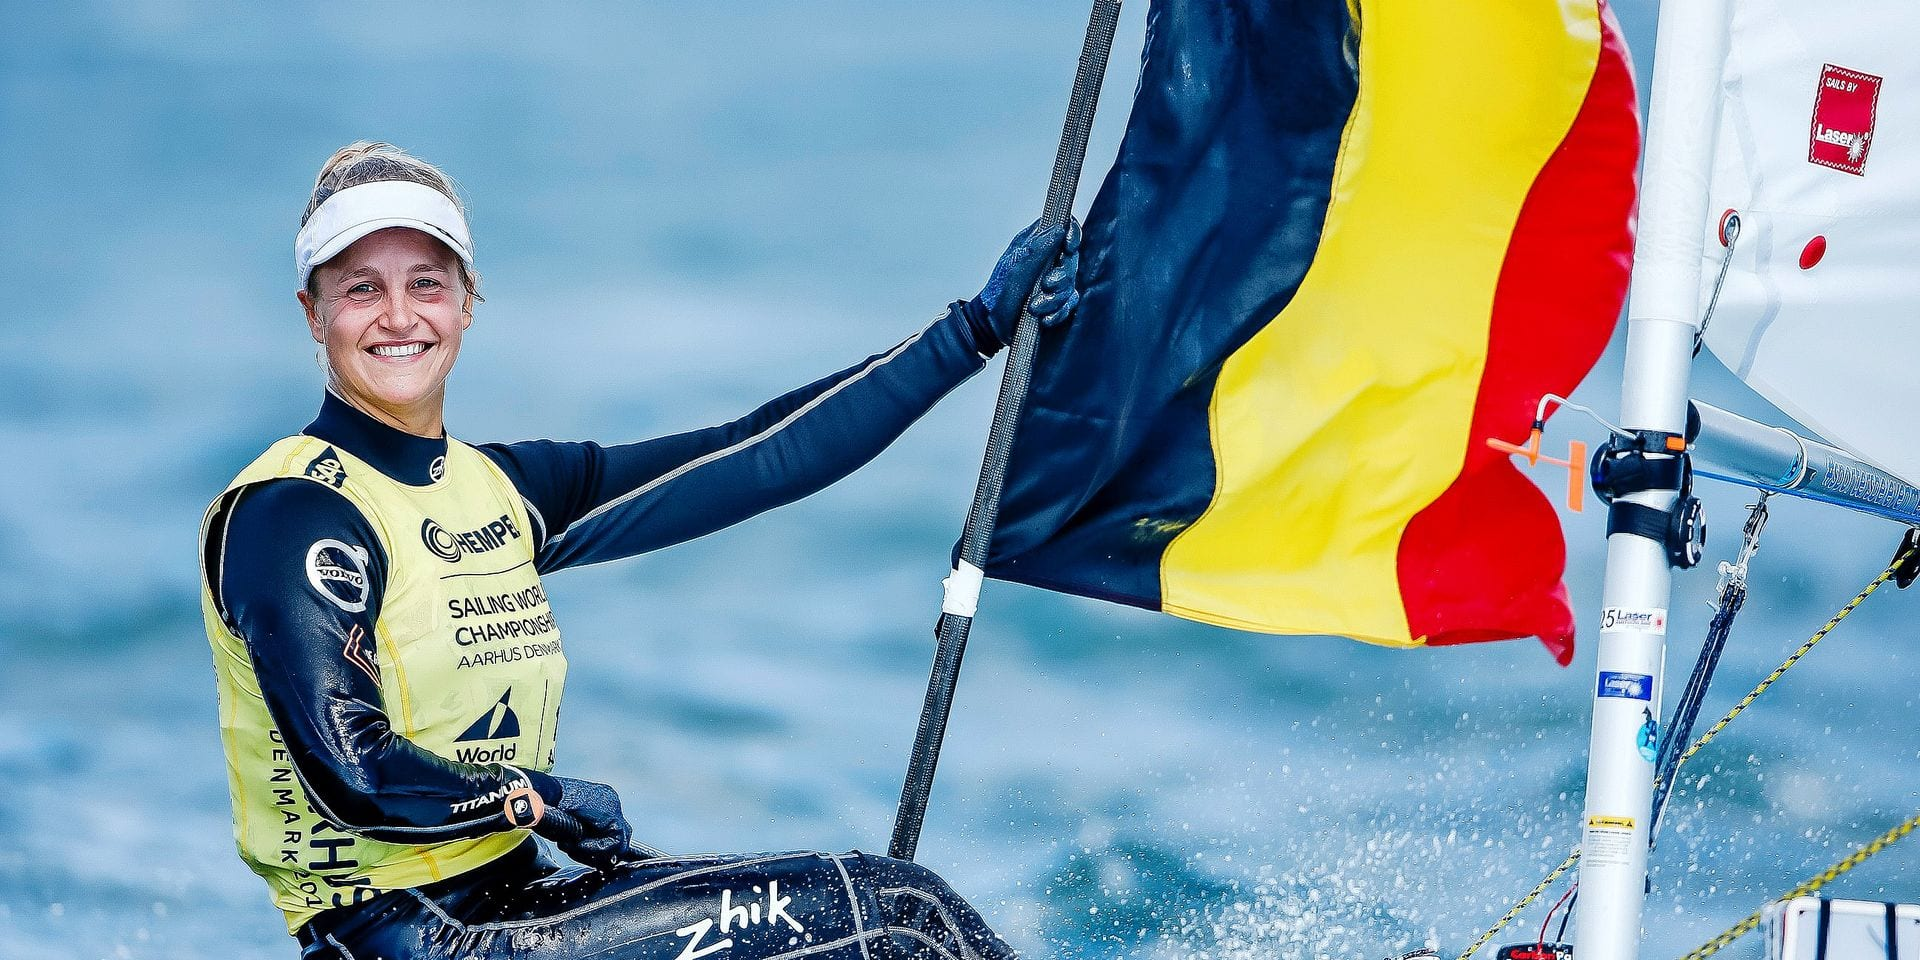 ATTENTION EDITORS, MANDATORY CREDIT: WORLD SAILING This handout picture, distributed by World Sailing shows Belgian gold medalist Emma Plasschaert celebrating after winning the World Championships in Aarhus, Denmark, Friday 10 August 2018. BELGA PHOTO PEDRO MARTINEZ - SAILING ENERGY - WORLD SAILING